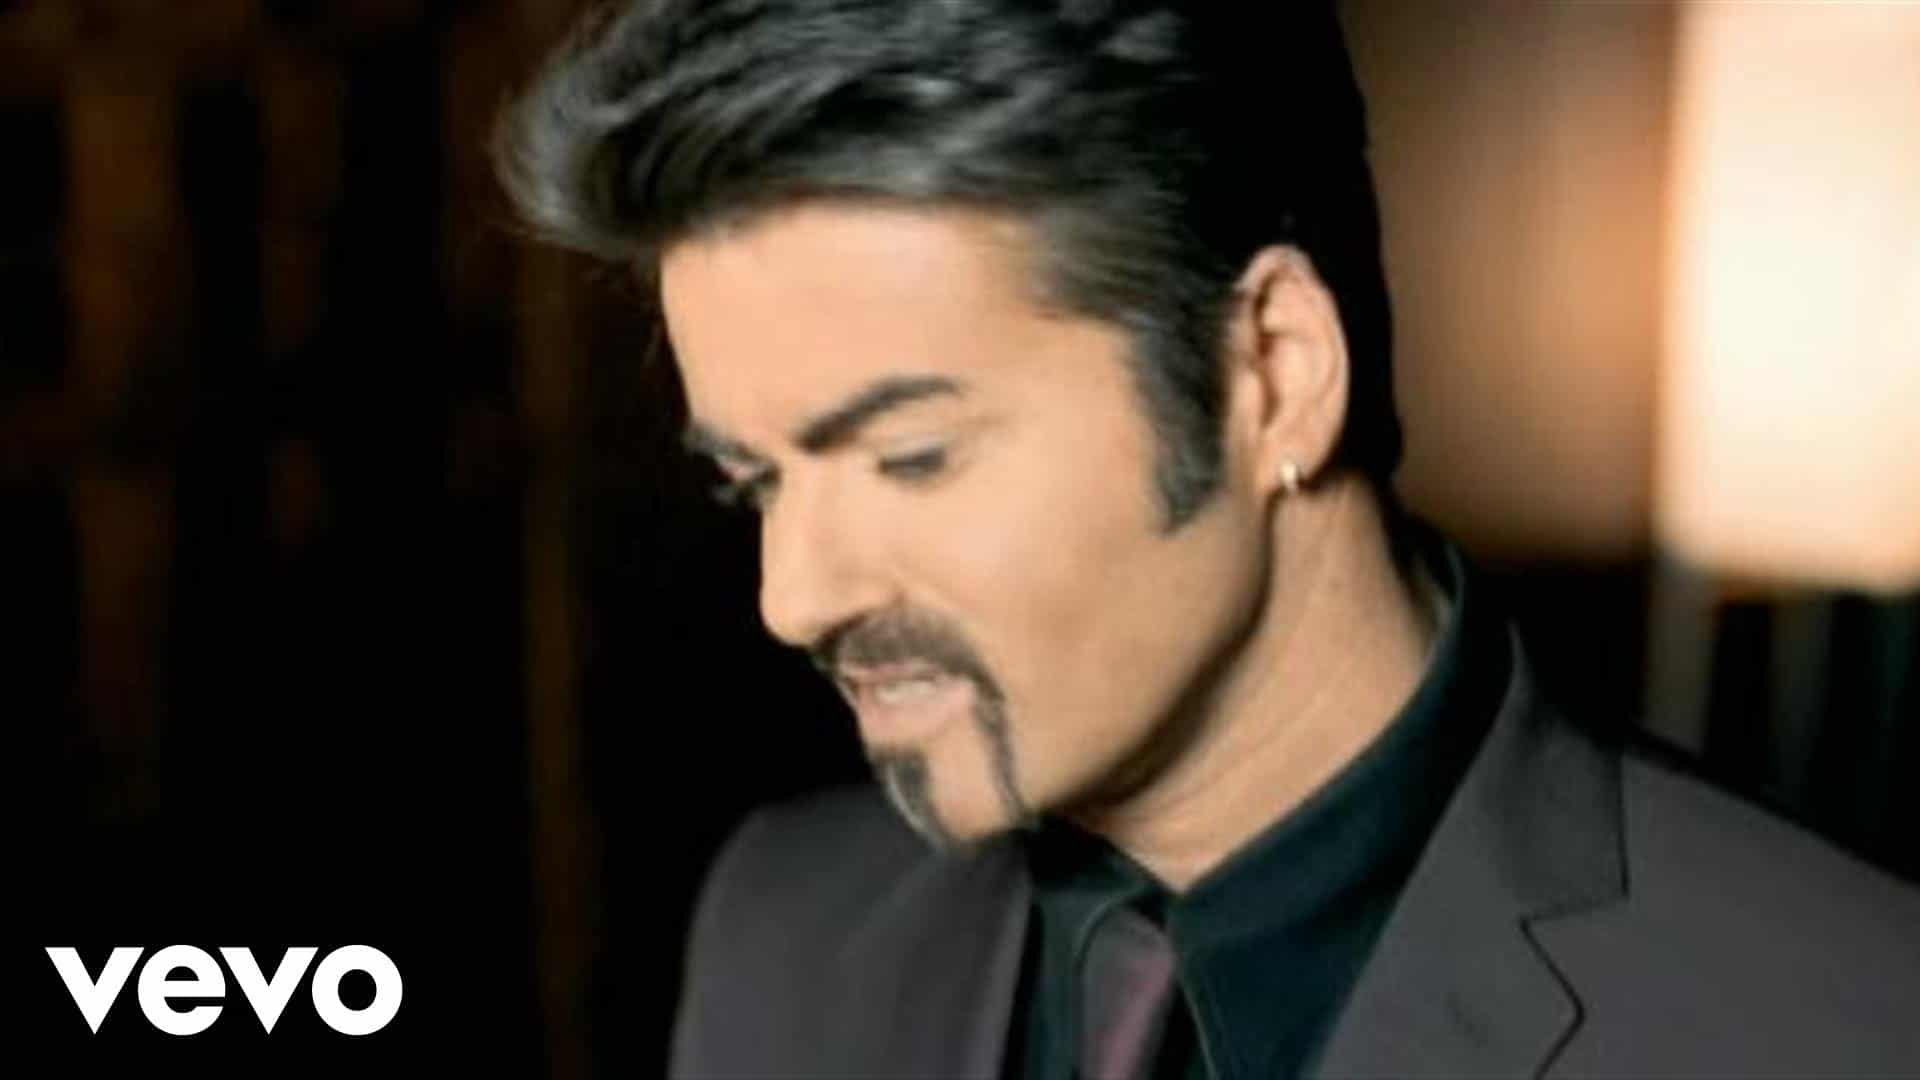 Music shock: George Michael is dead, at 53